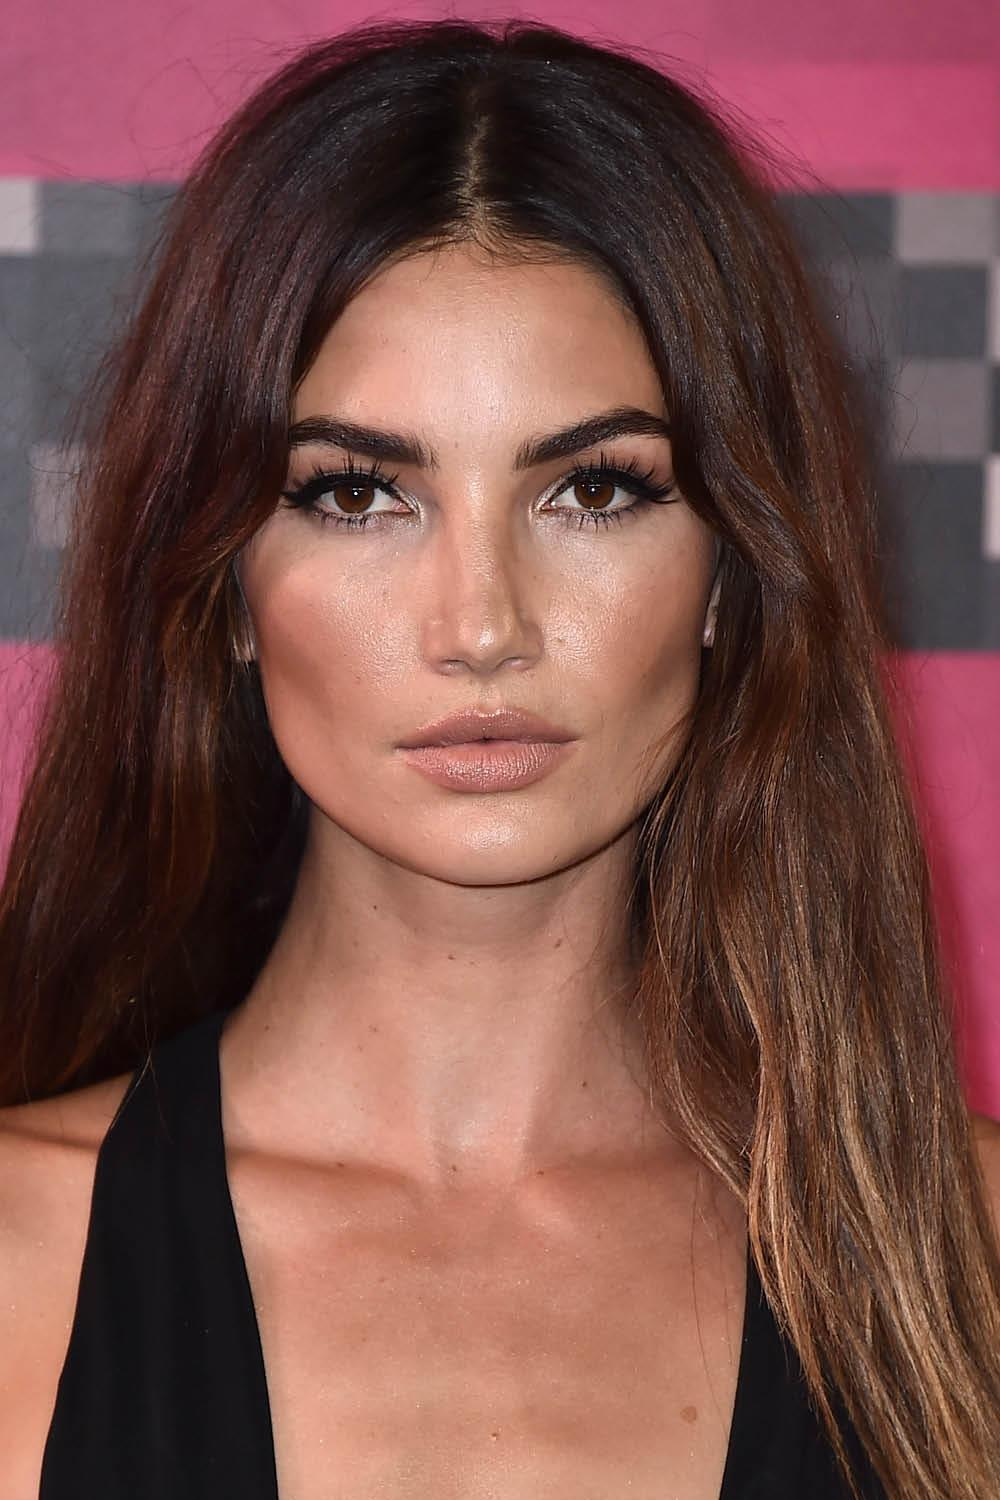 mechas californianas lily aldridge. Mechas californianas para morenas